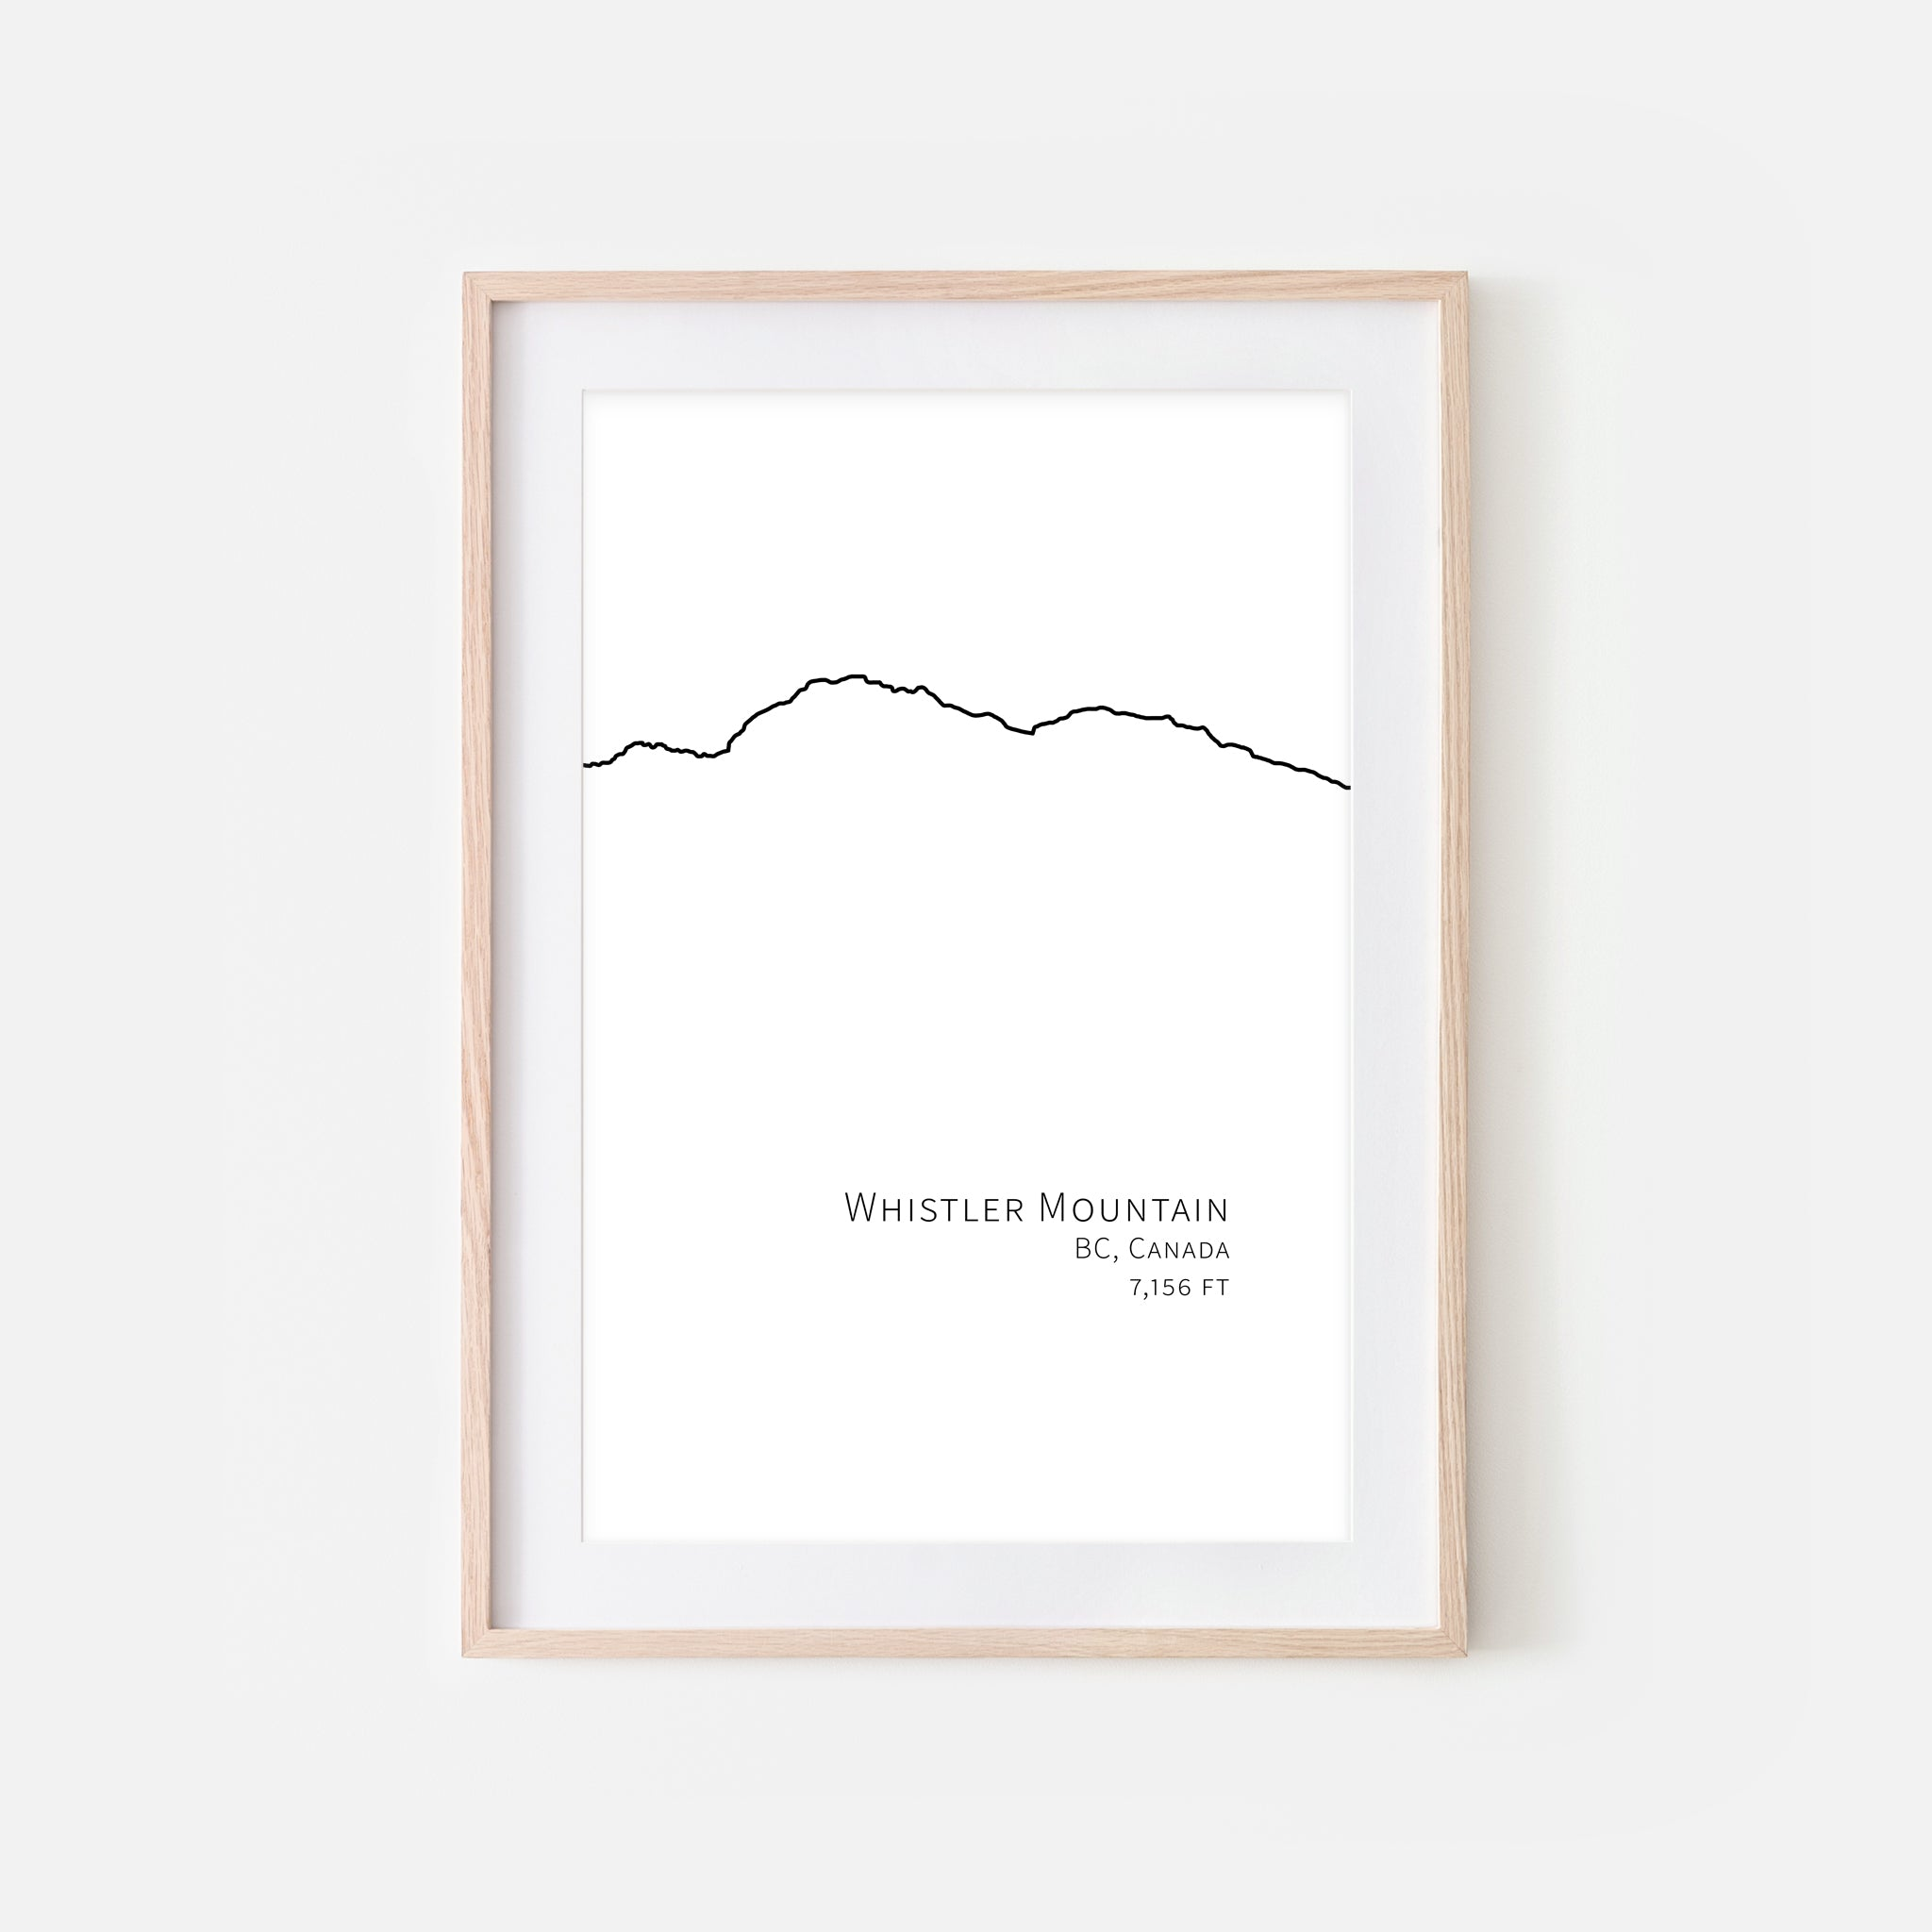 Whistler Mountain BC Canada Wall Art - Minimalist Line Drawing - Black and White Print, Poster or Printable Download